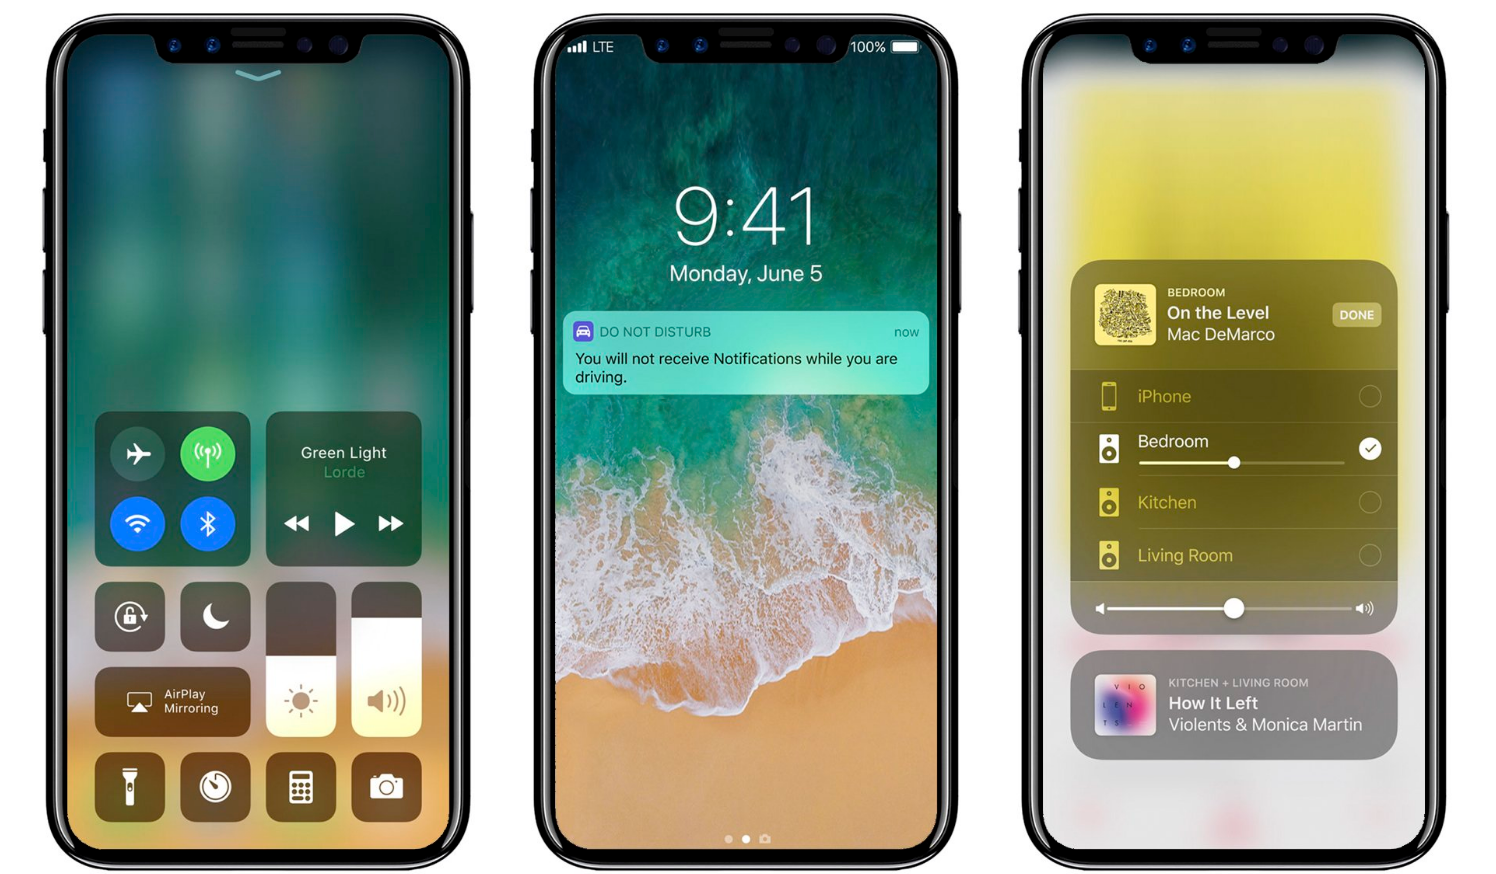 In November 2017, Apple will release the new iPhone X in honor of the iPhone's 10th anniversary.